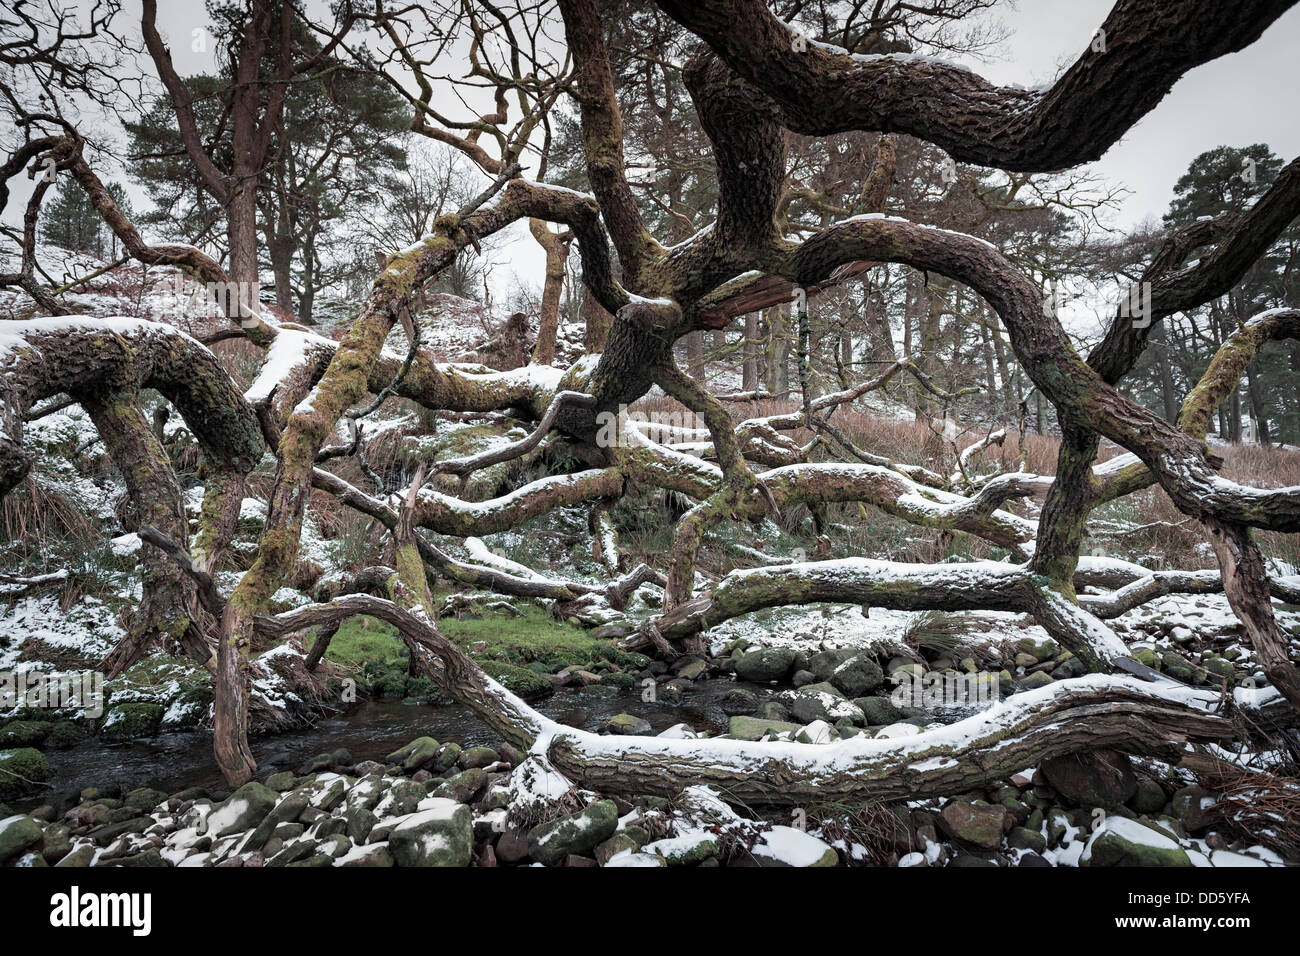 Against all the odds, a fallen tree continues to grow in a horizontal direction resulting in a scary looking tangle - Stock Image